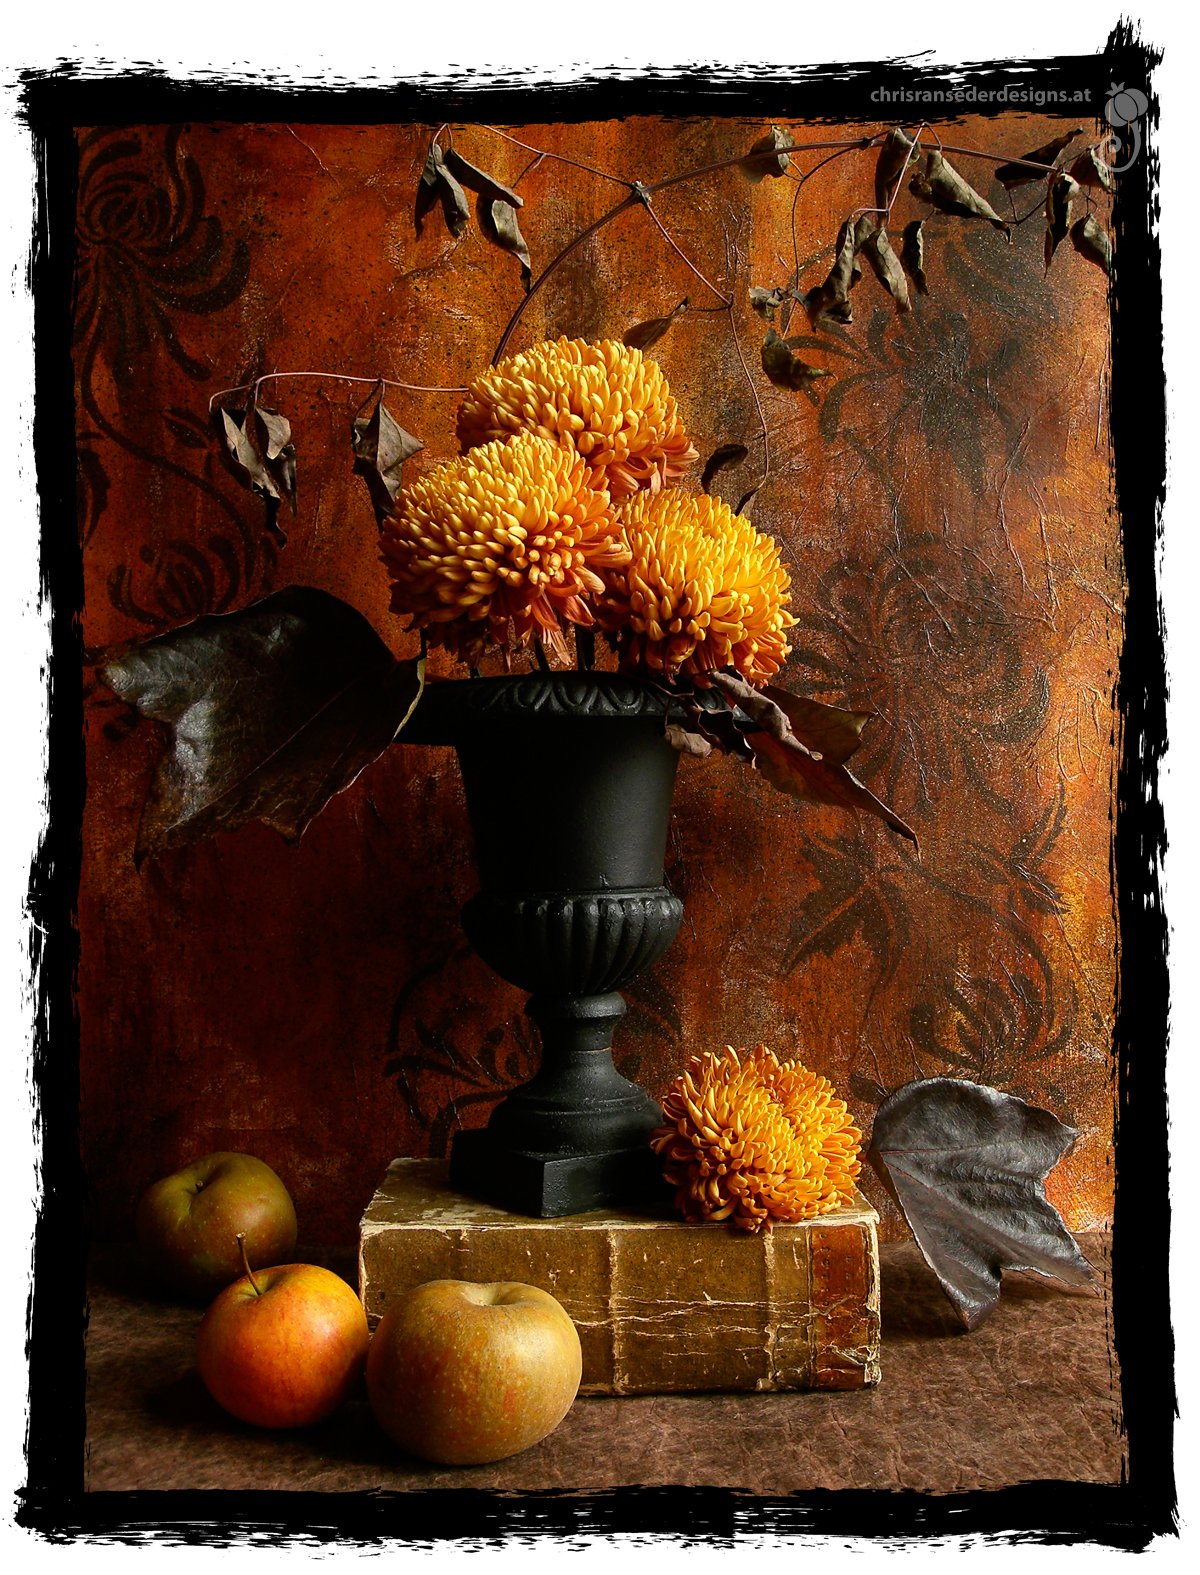 Stillleben mit gelben Chrysanthemen und Äpfeln. | Still life with yellow chrysanthemums and apples.